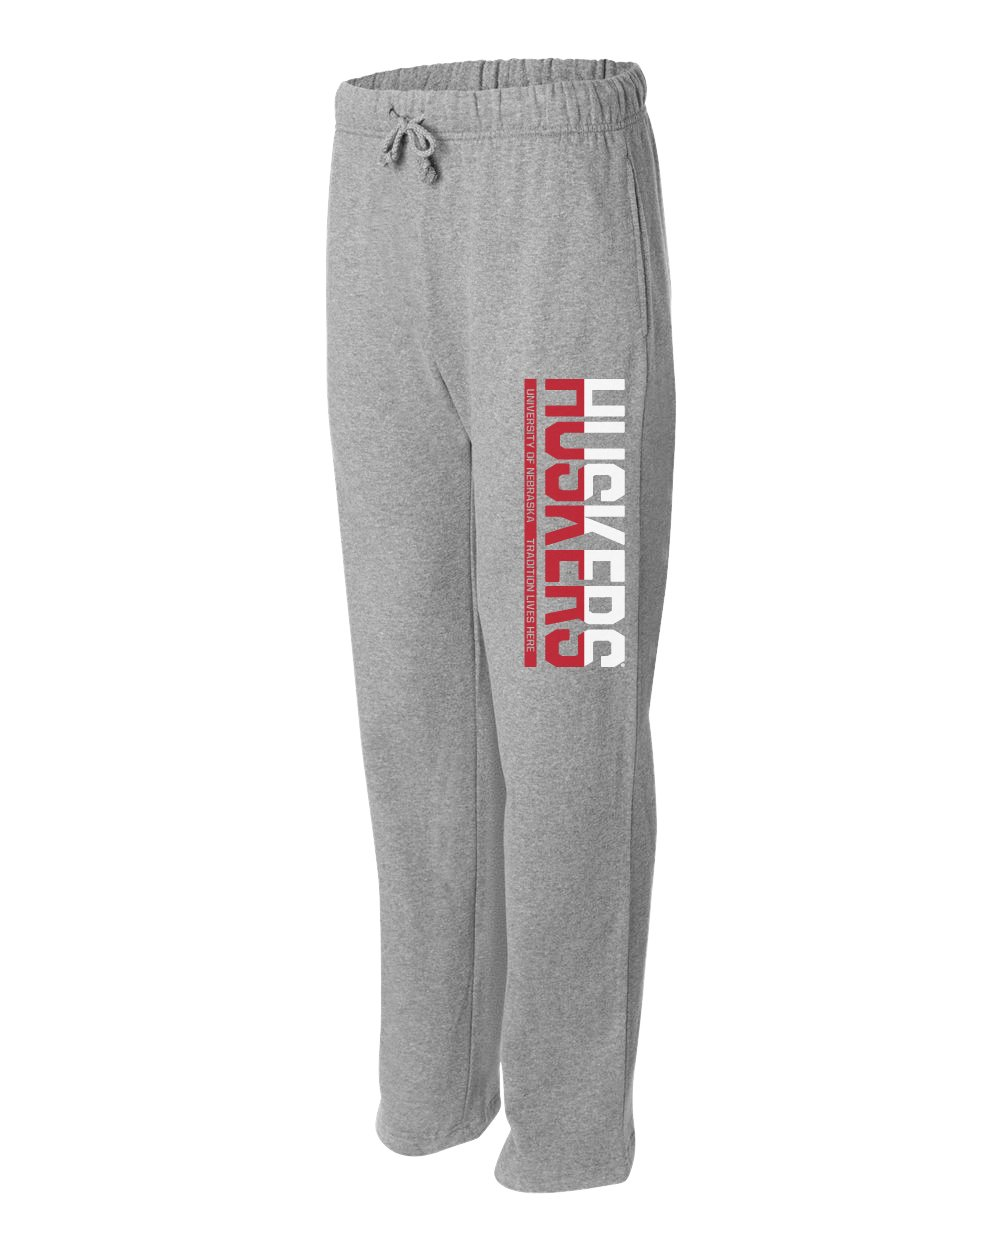 Premium Nebraska Fleece Sweatpants CornBorn 20 You Choose Husker Graphics